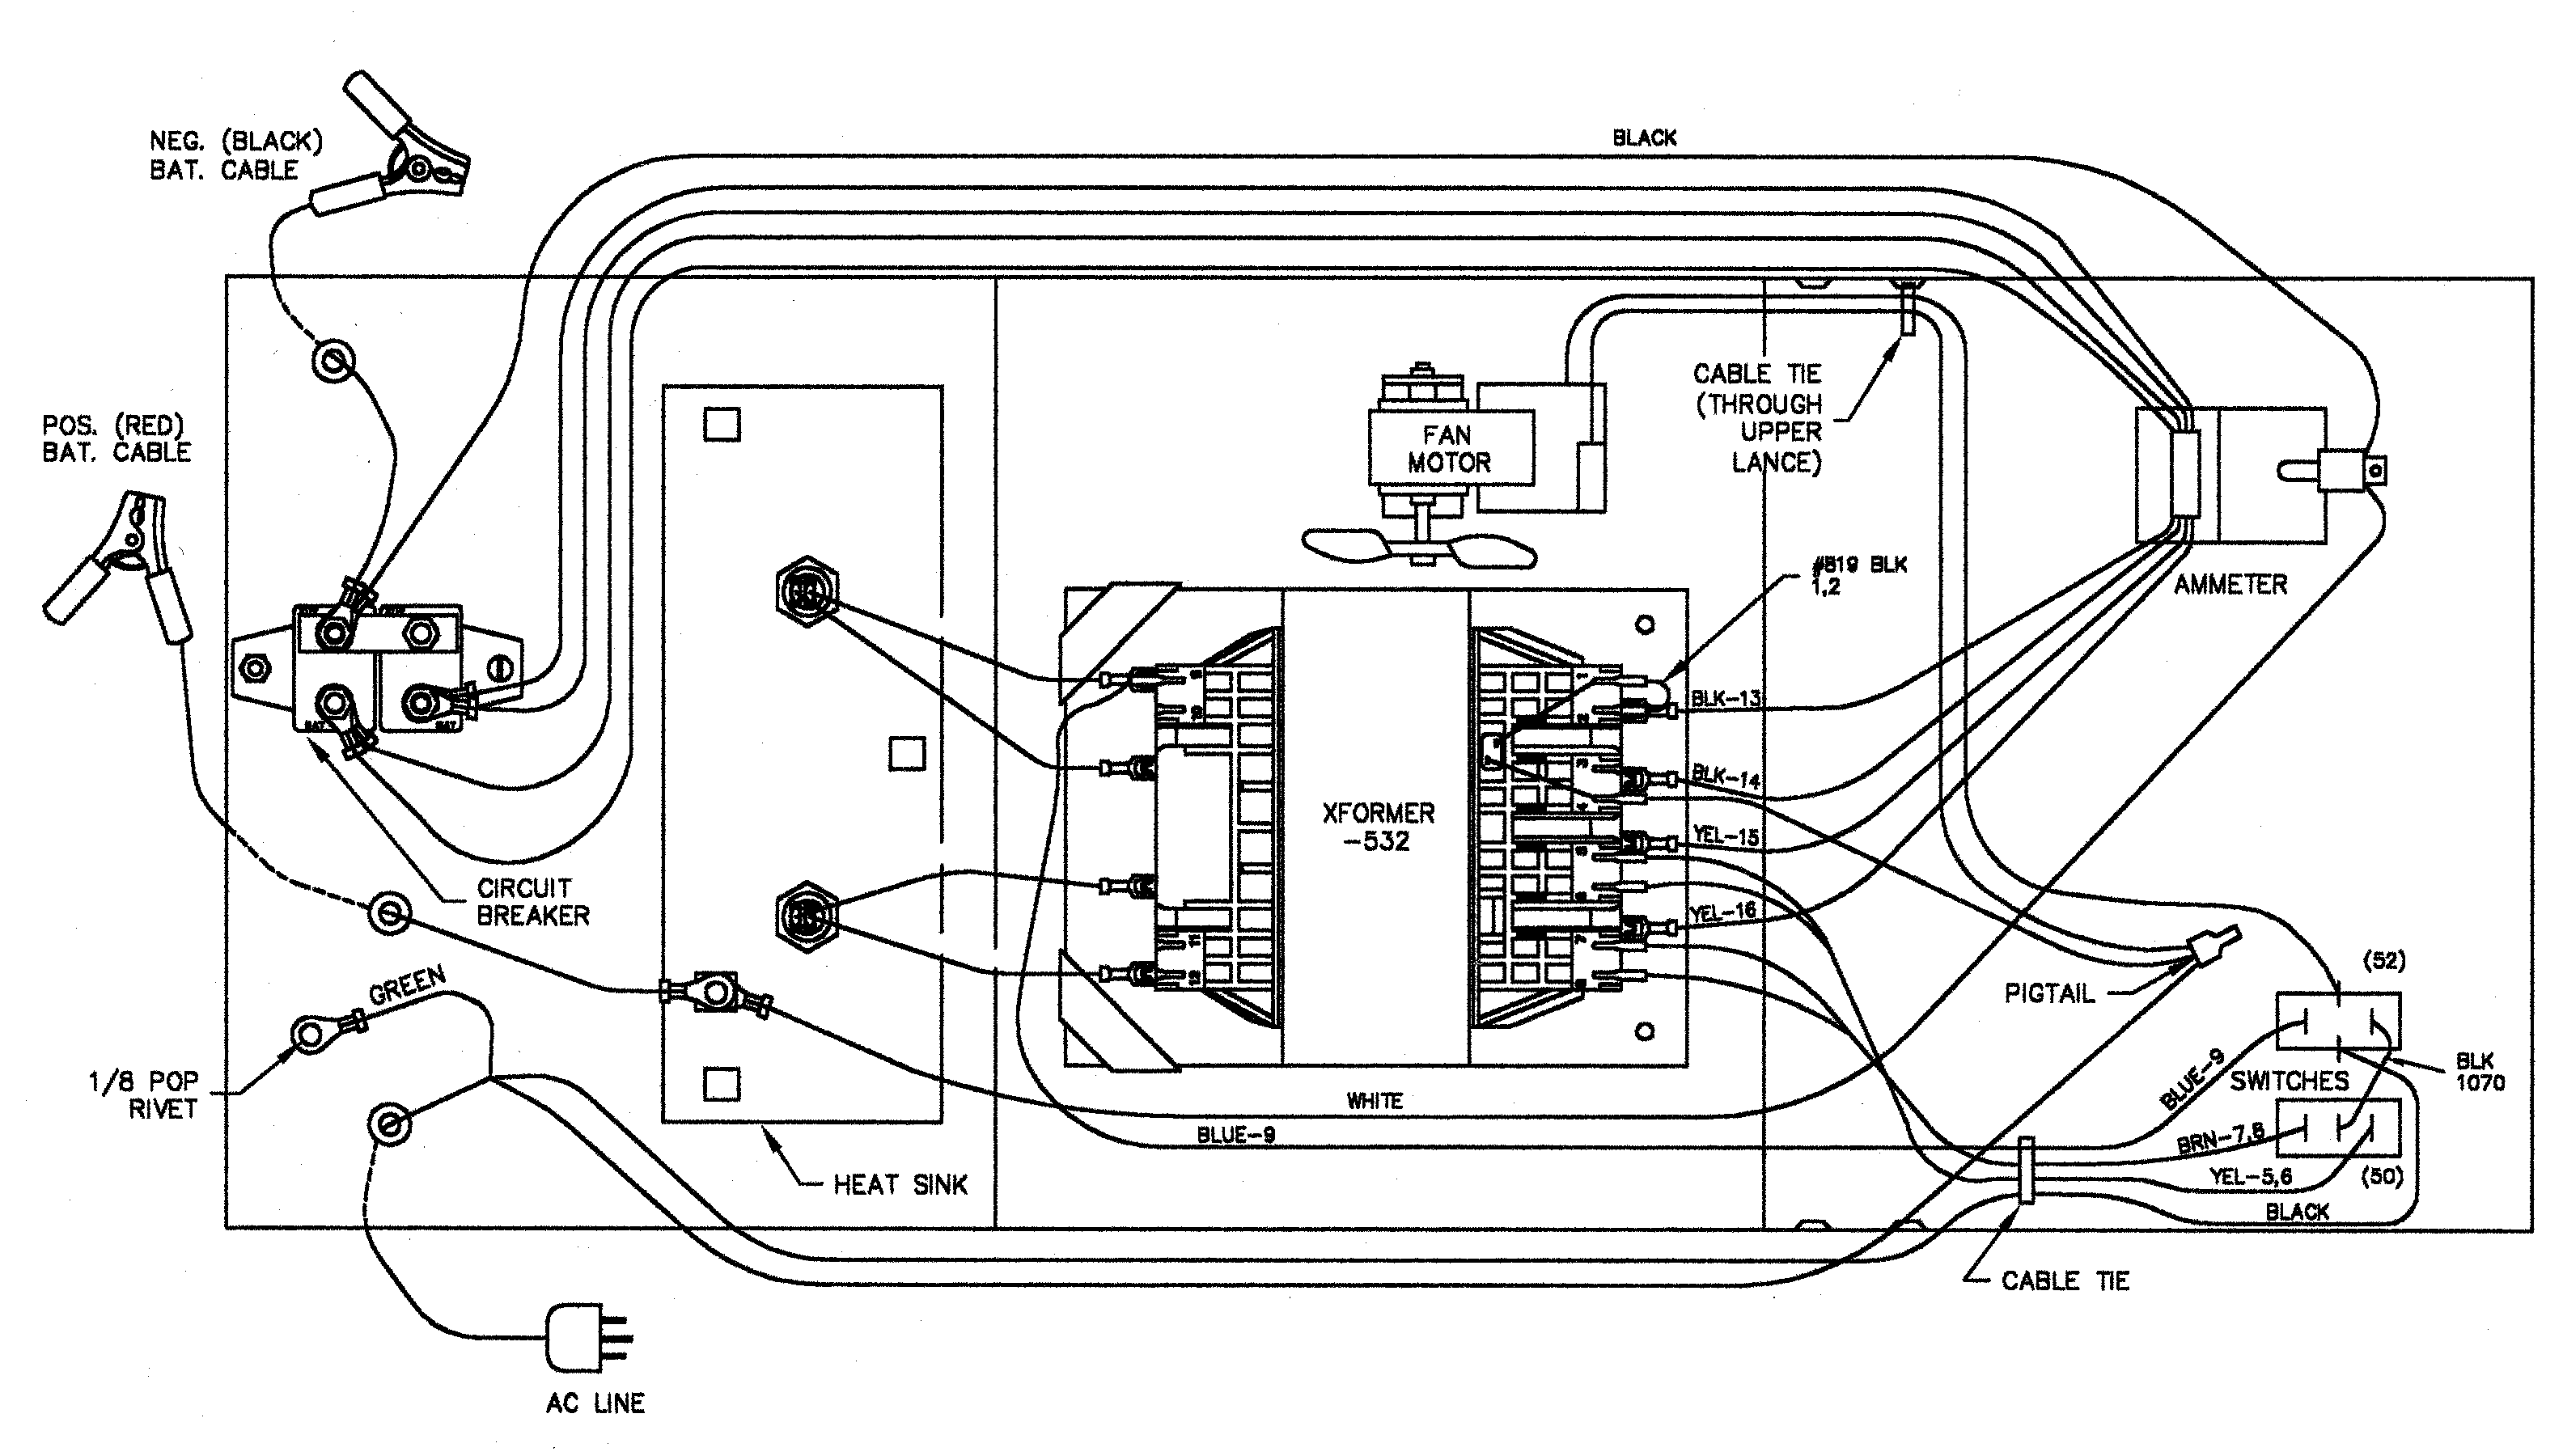 battery charger wire diagram